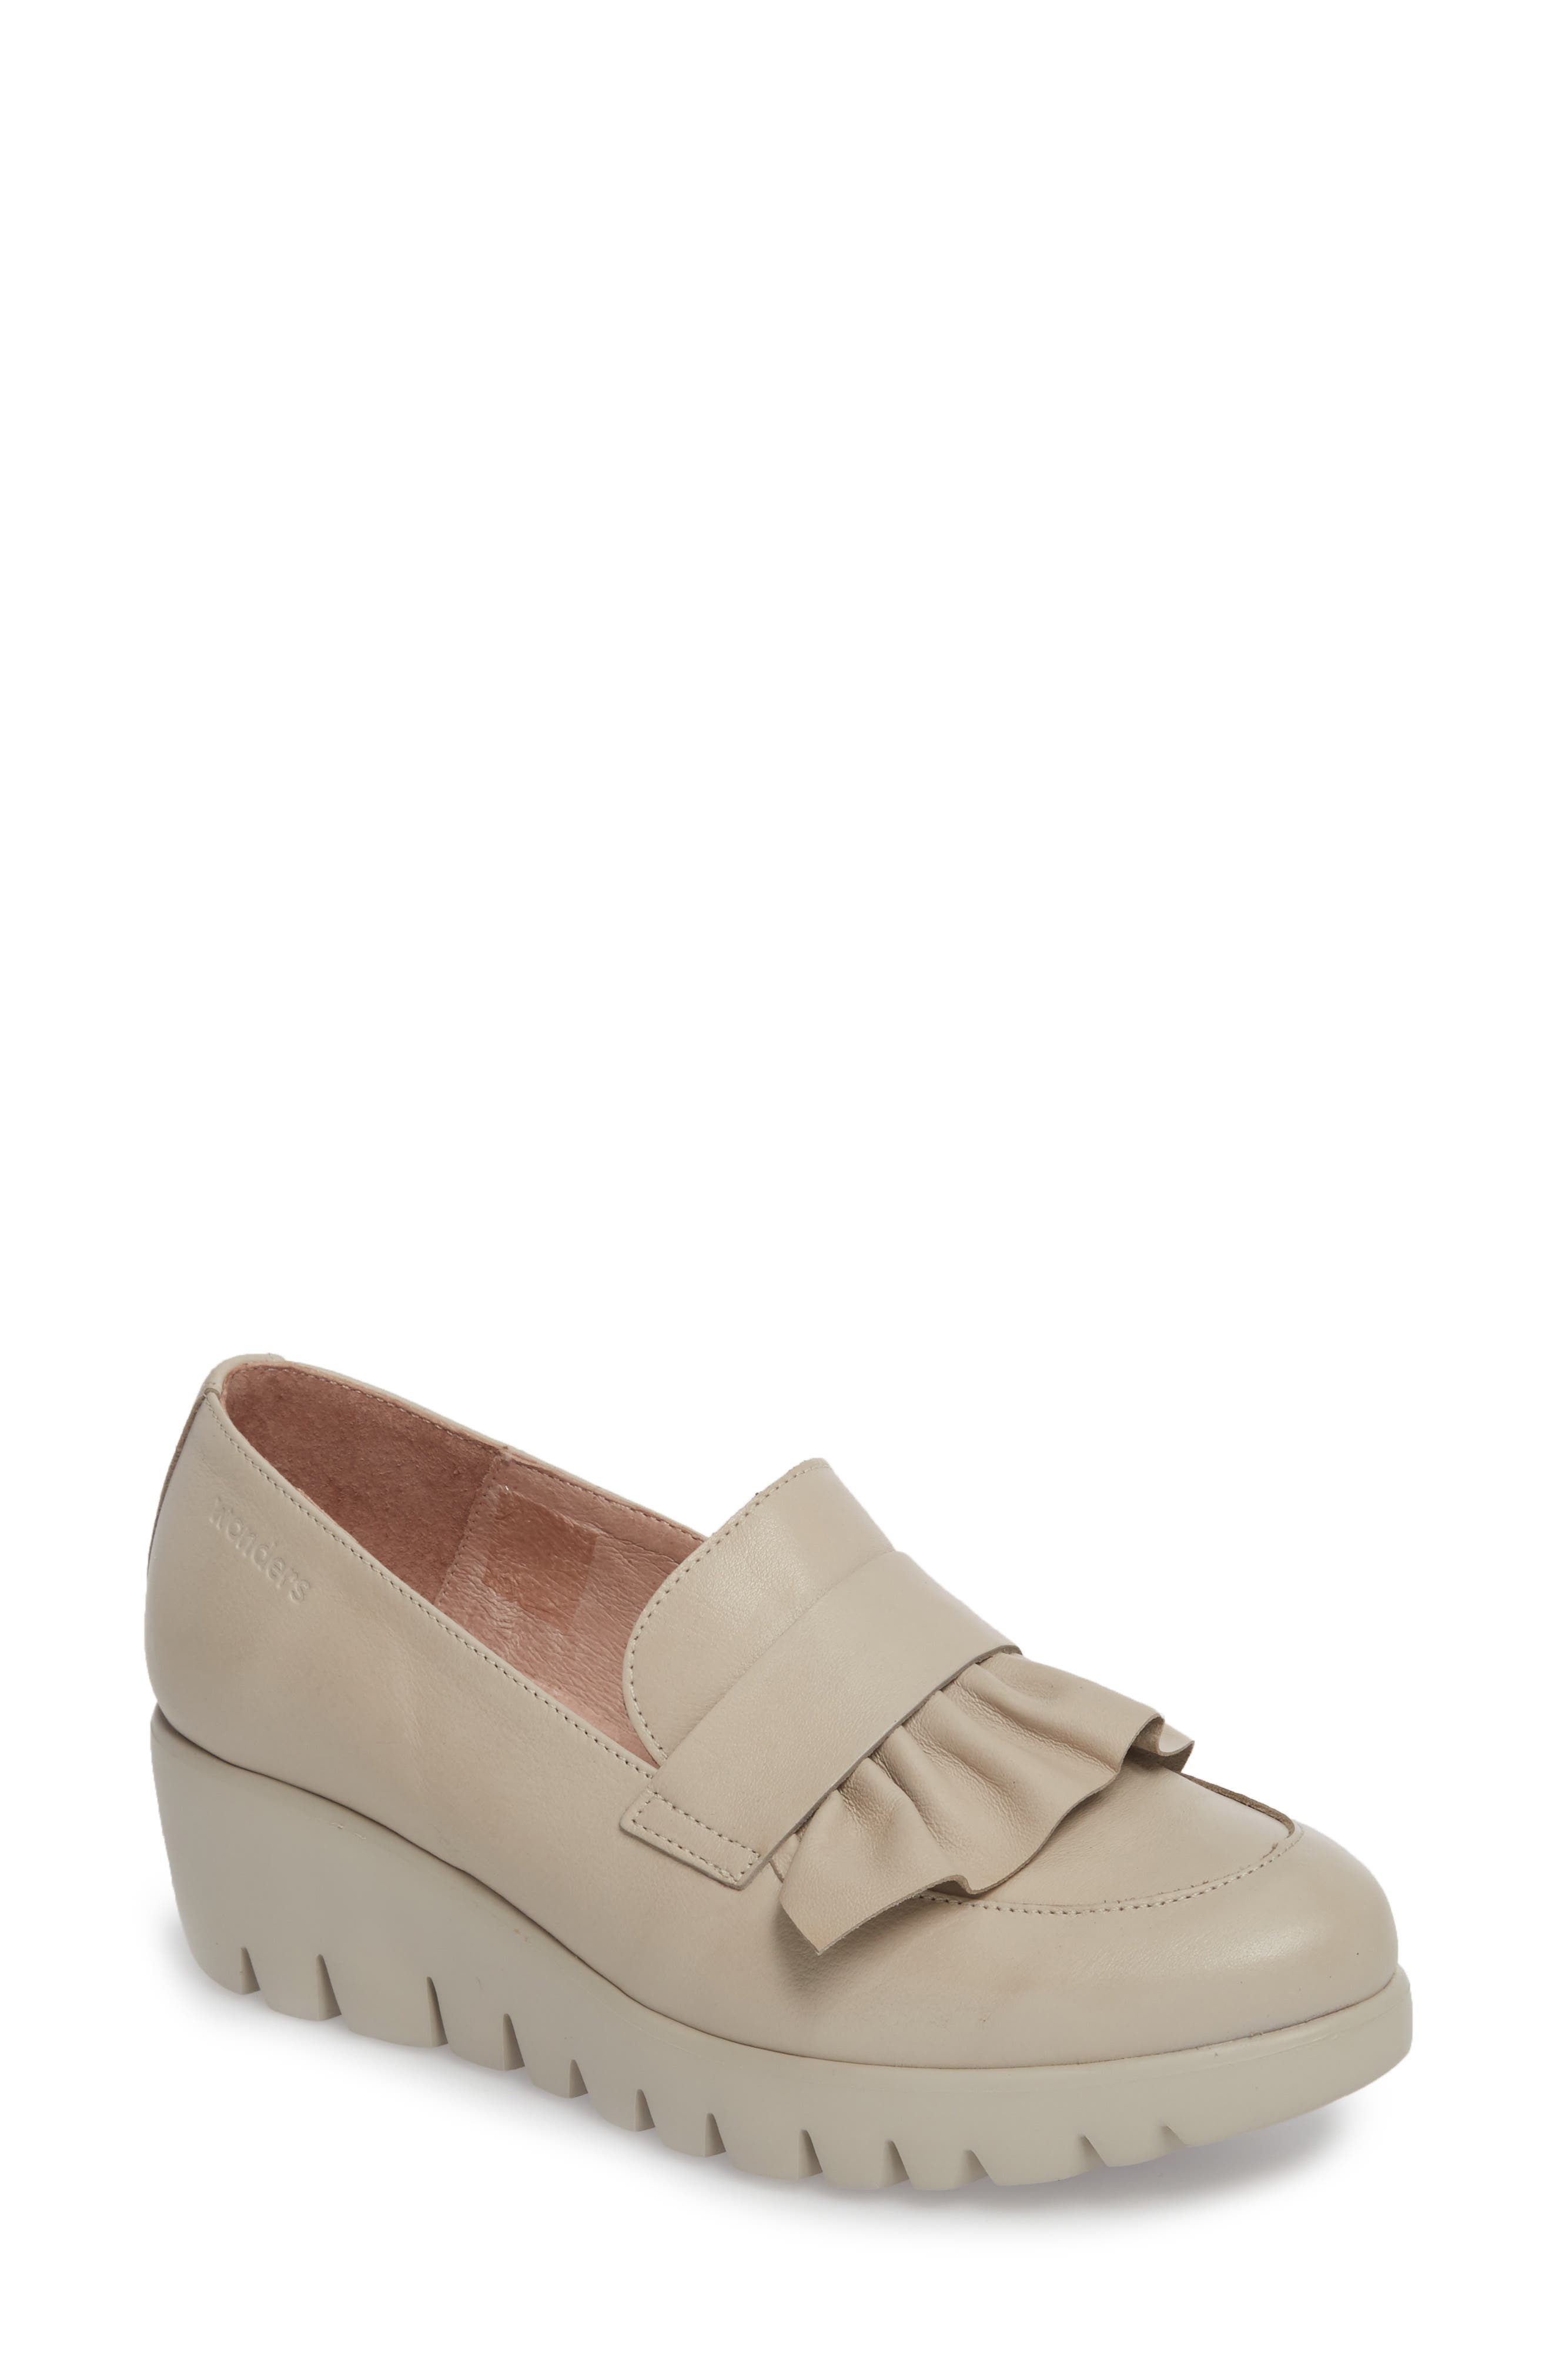 Loafer Wedge,                         Main,                         color, LIGHT GREY LEATHER